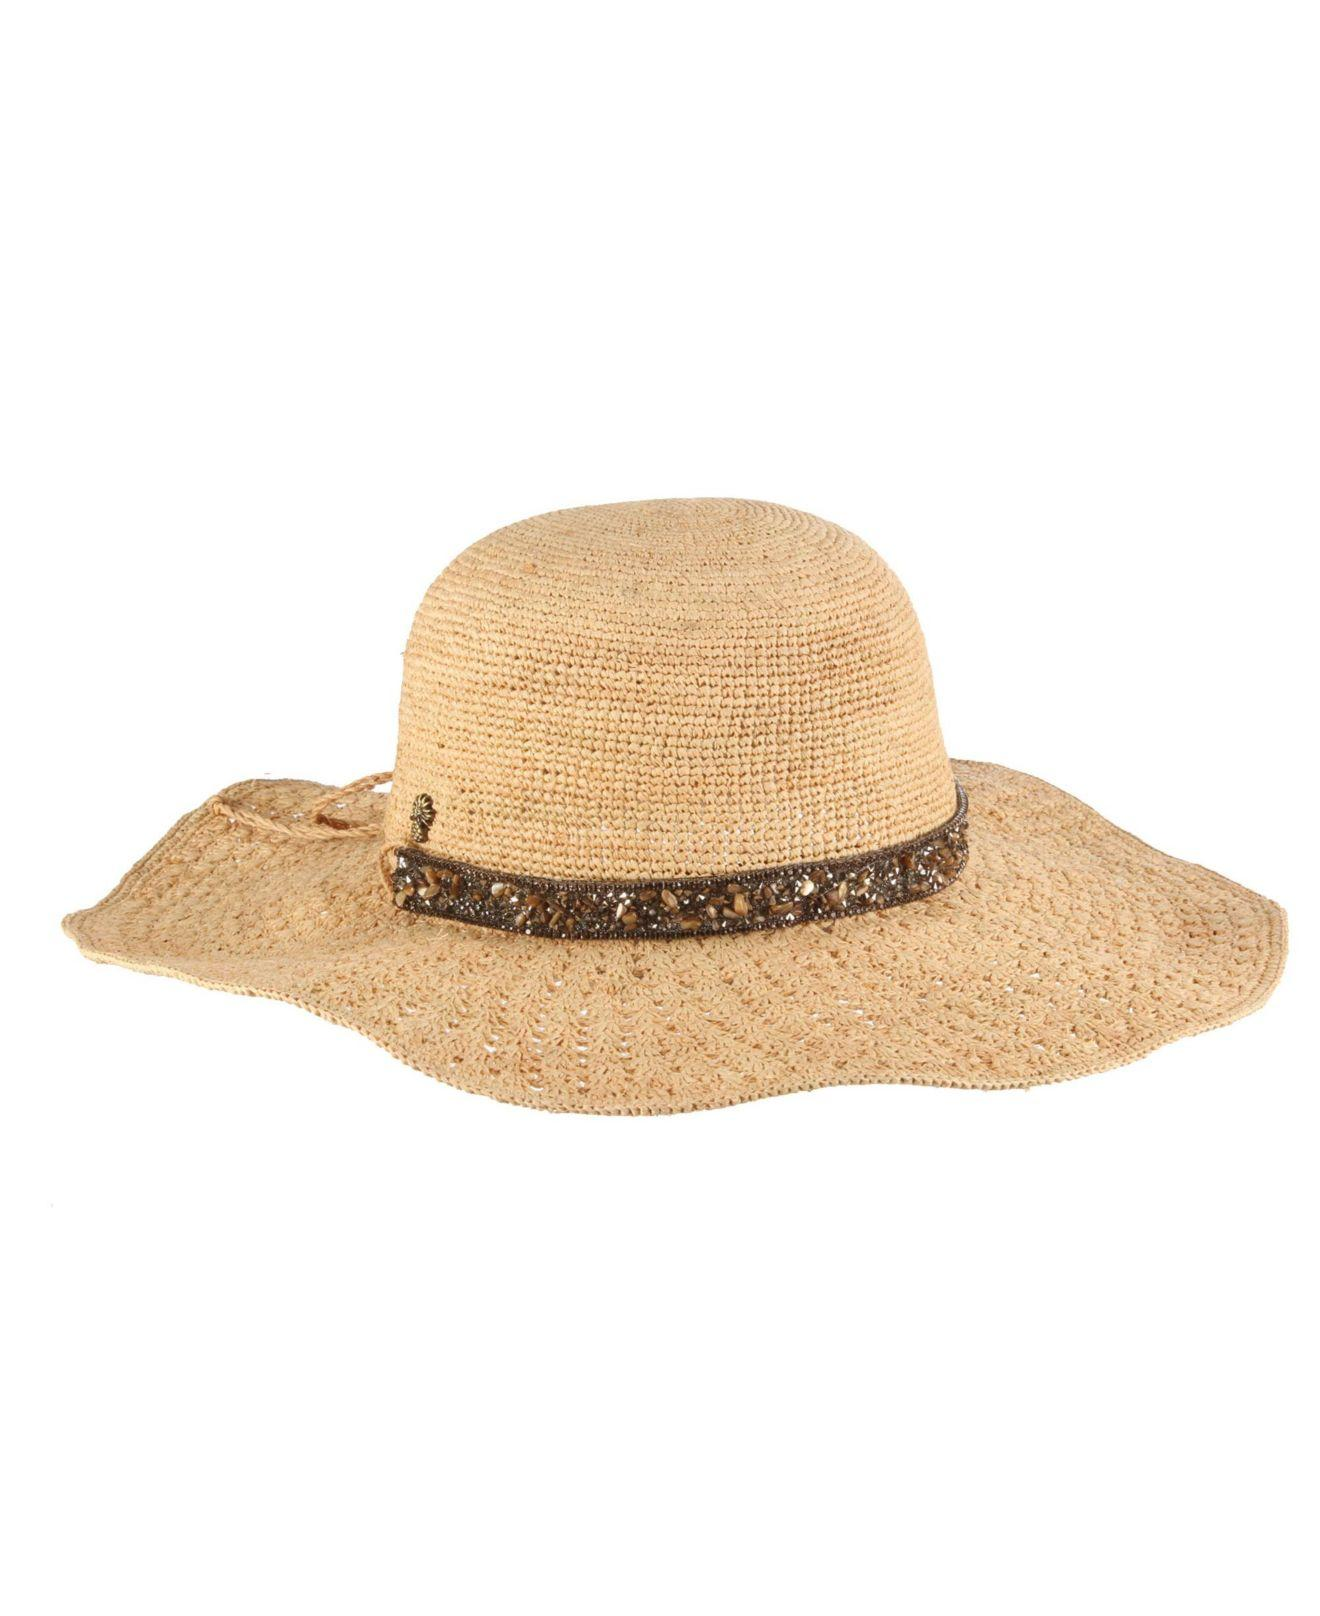 f05c5e9db Tommy Bahama Raffia Floppy Hat With Stone Band in Natural - Lyst